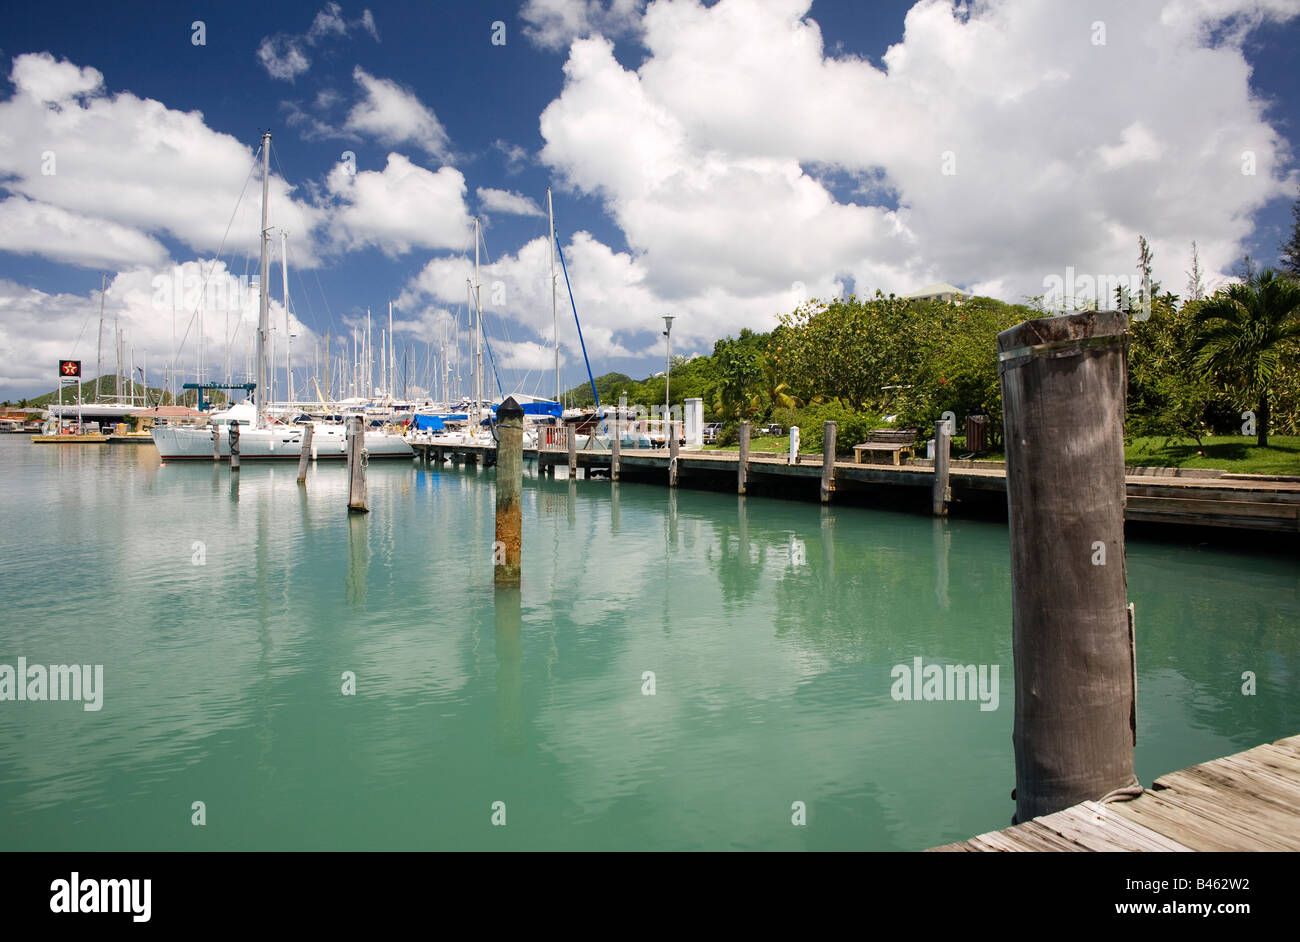 Yacht moored by the Texaco fuel station in Jolly Harbour on the Carribean island of Antigua, West Indies - Stock Image